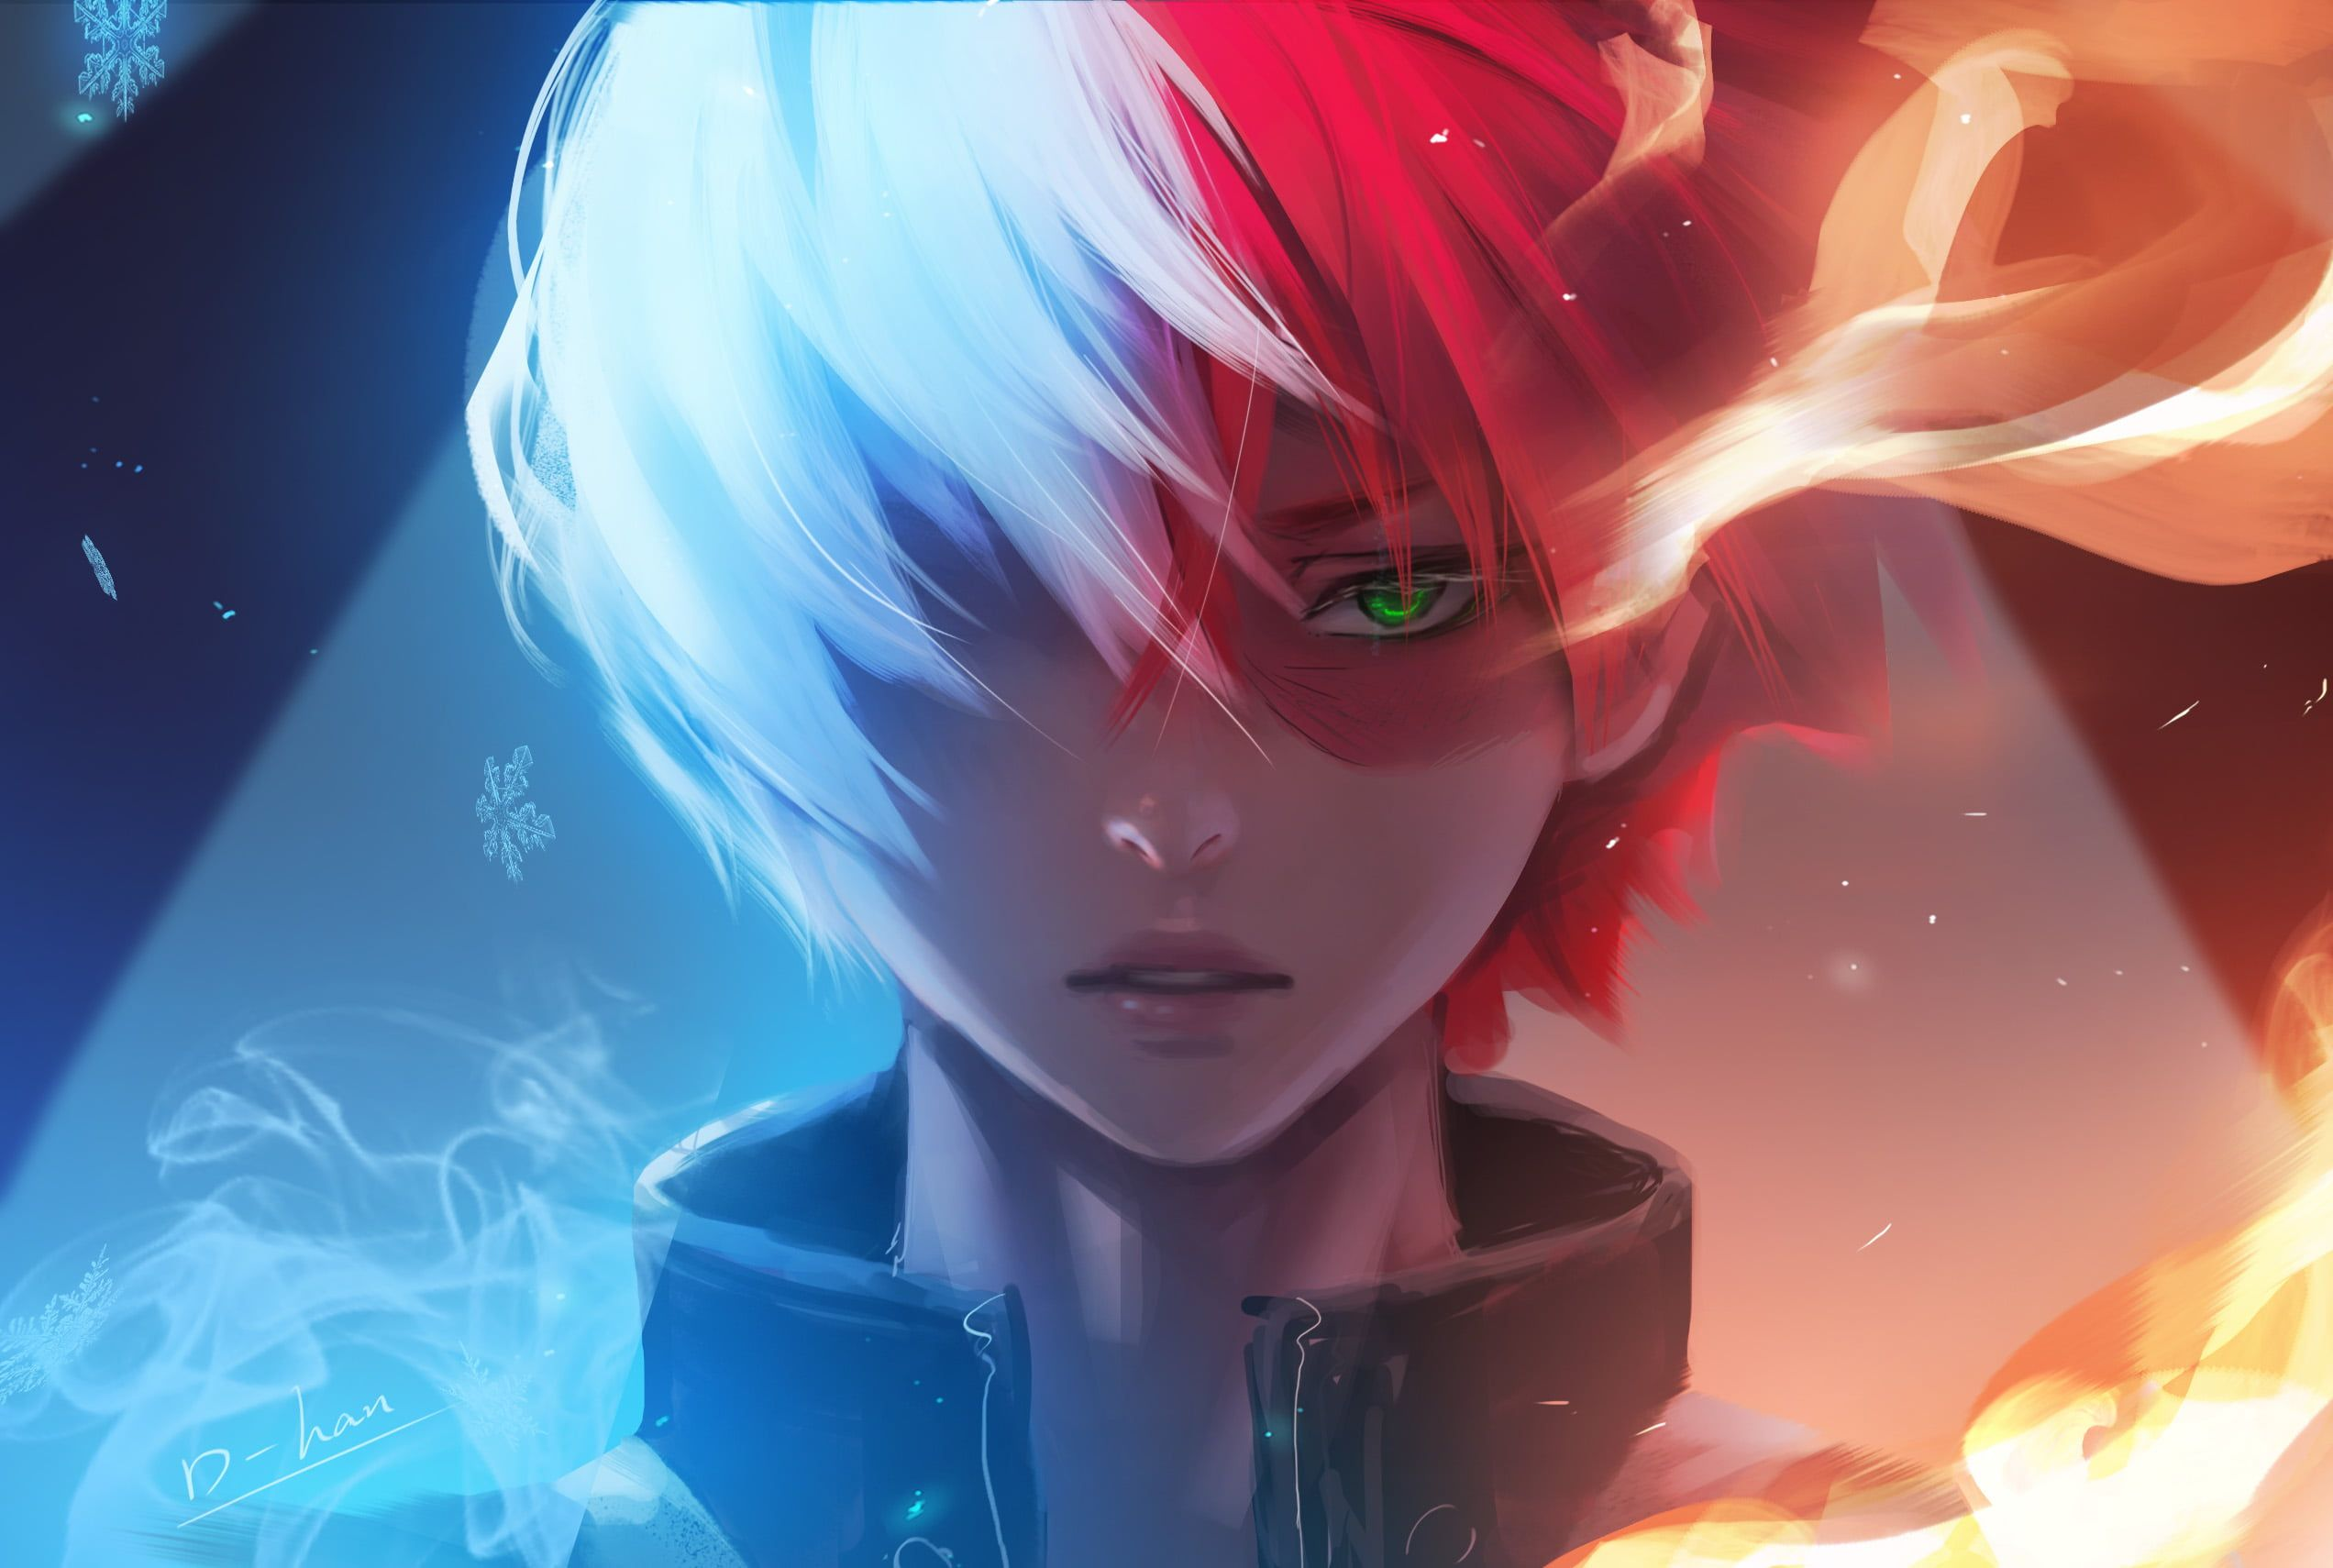 Anime My Hero Academia Boy Face Green Eyes Shoto Todoroki Two Toned Hair 1080p Wallpaper Hdwallpaper Desktop Dubstep Anime Dubstep Music